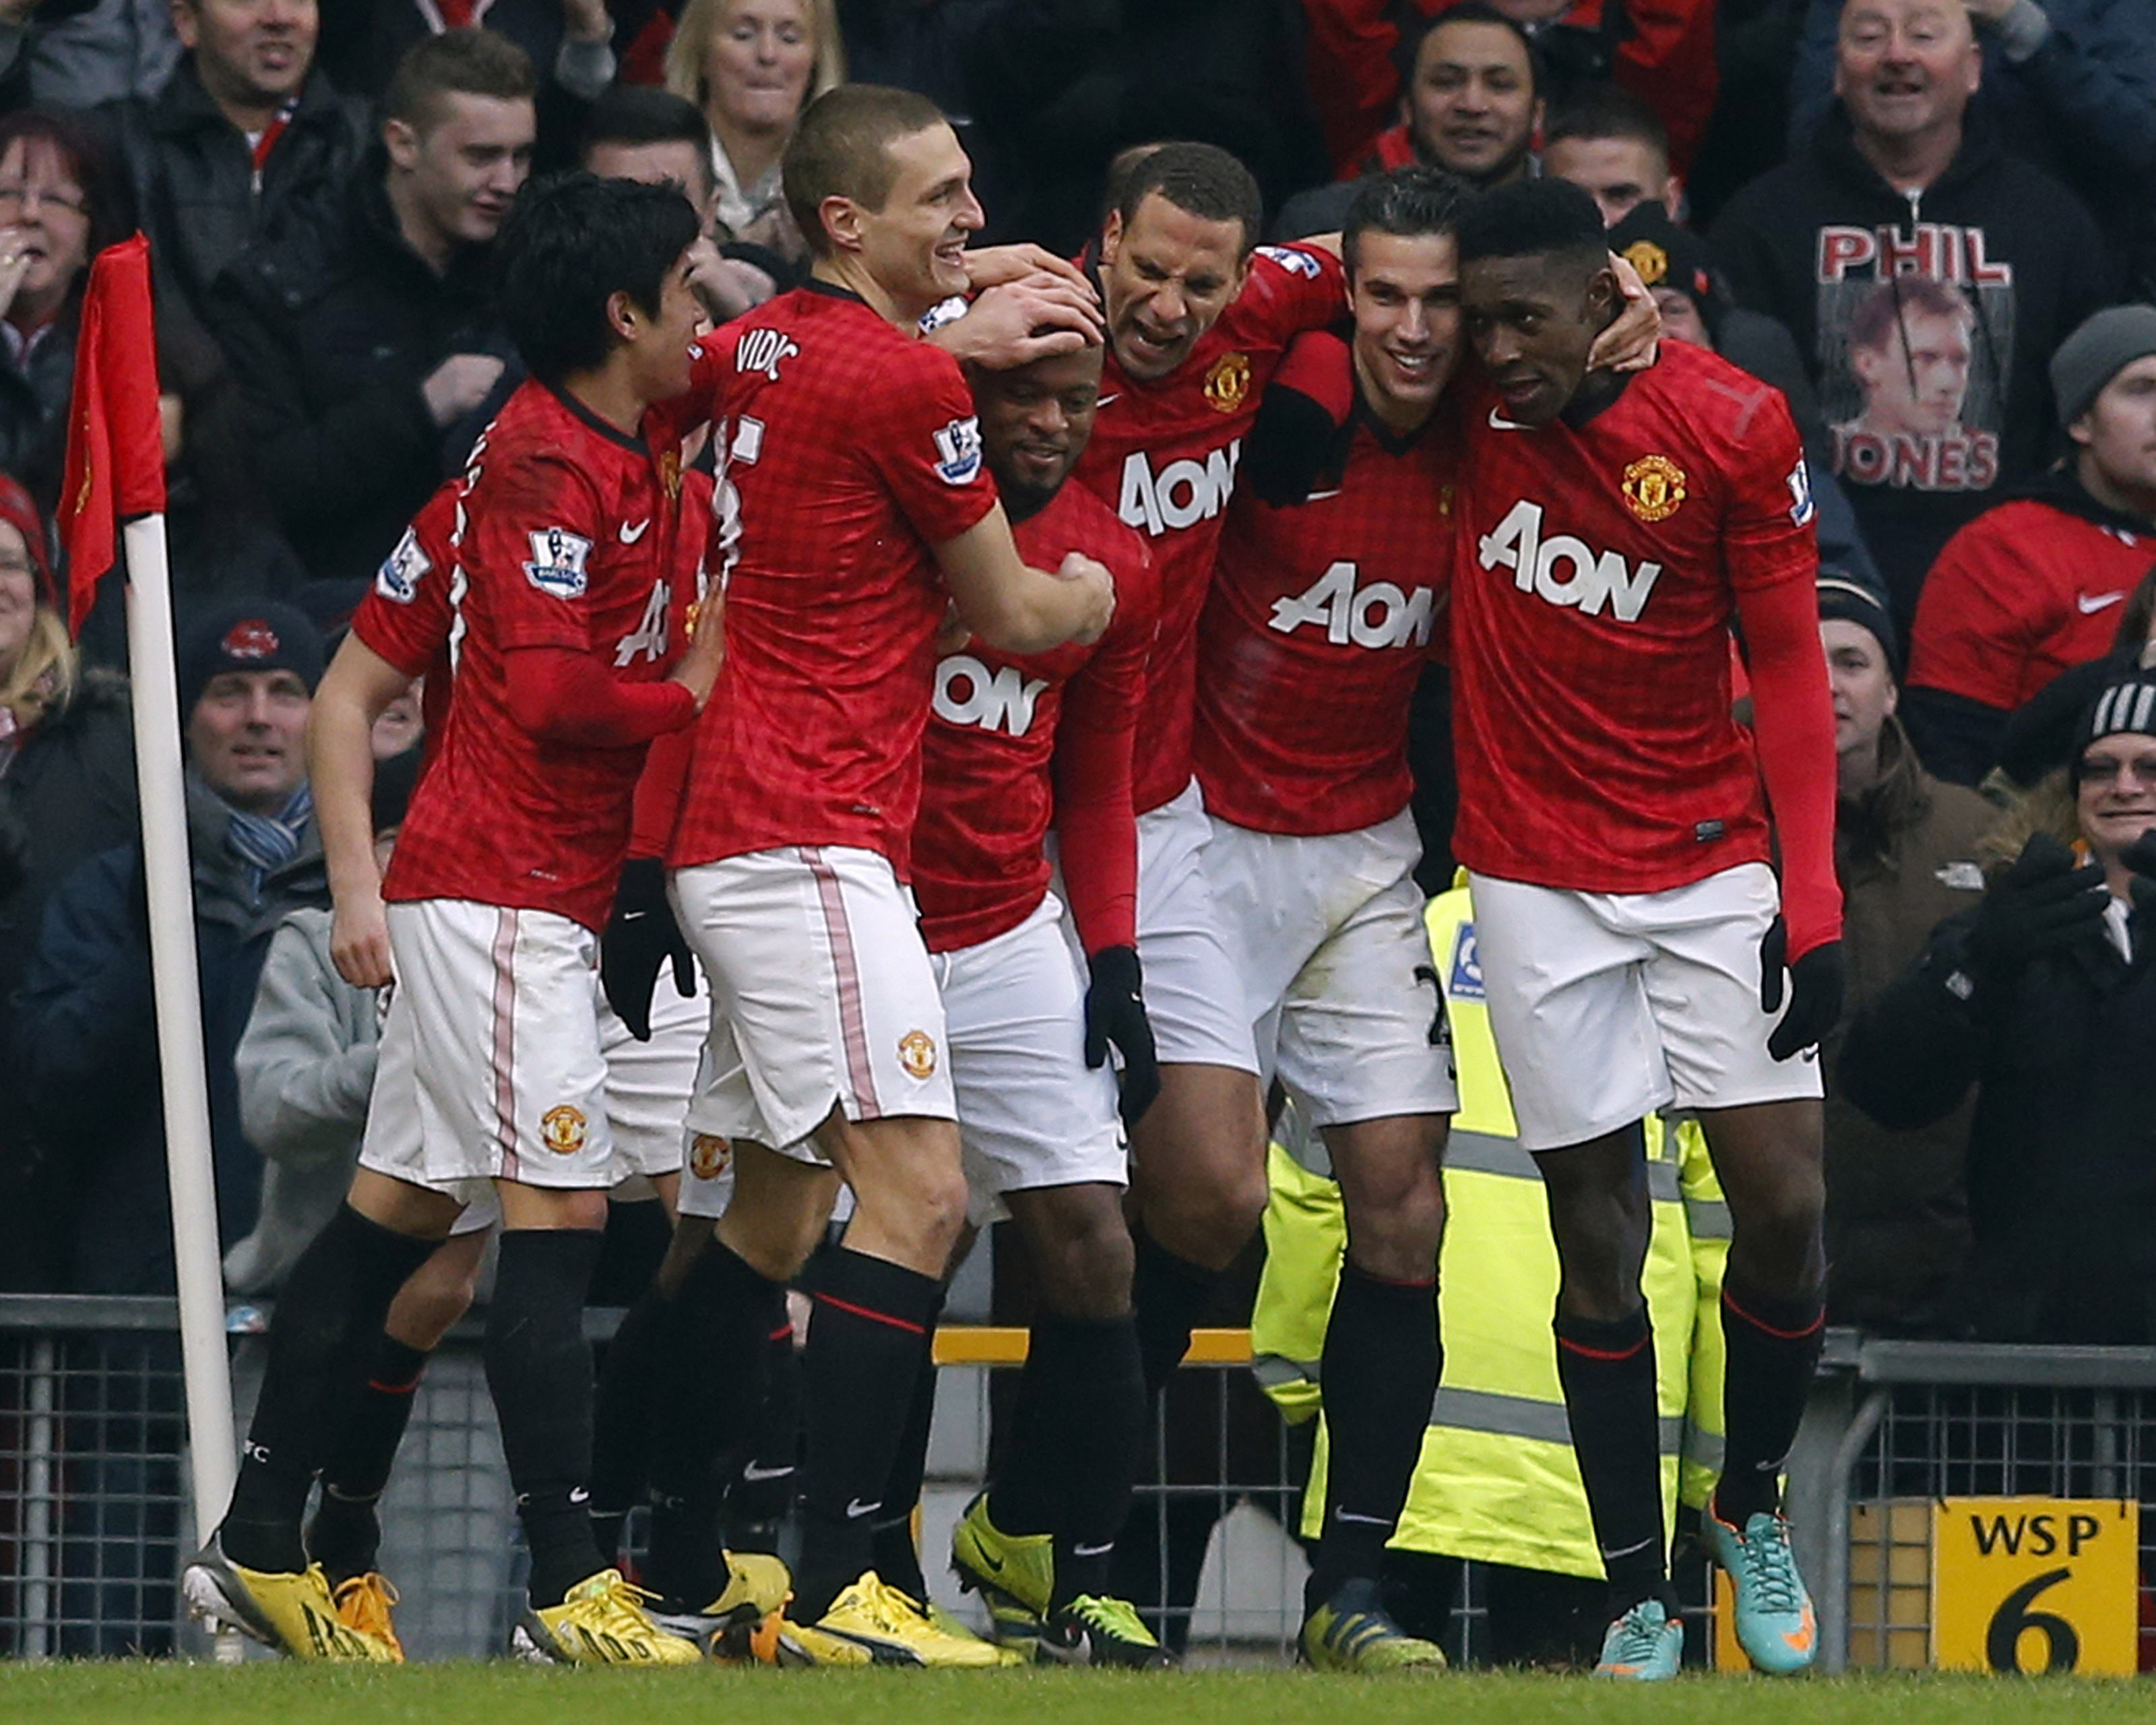 Manchester United's Patrice Evra celebrates his goal against Liverpool with team mates (Reuters)